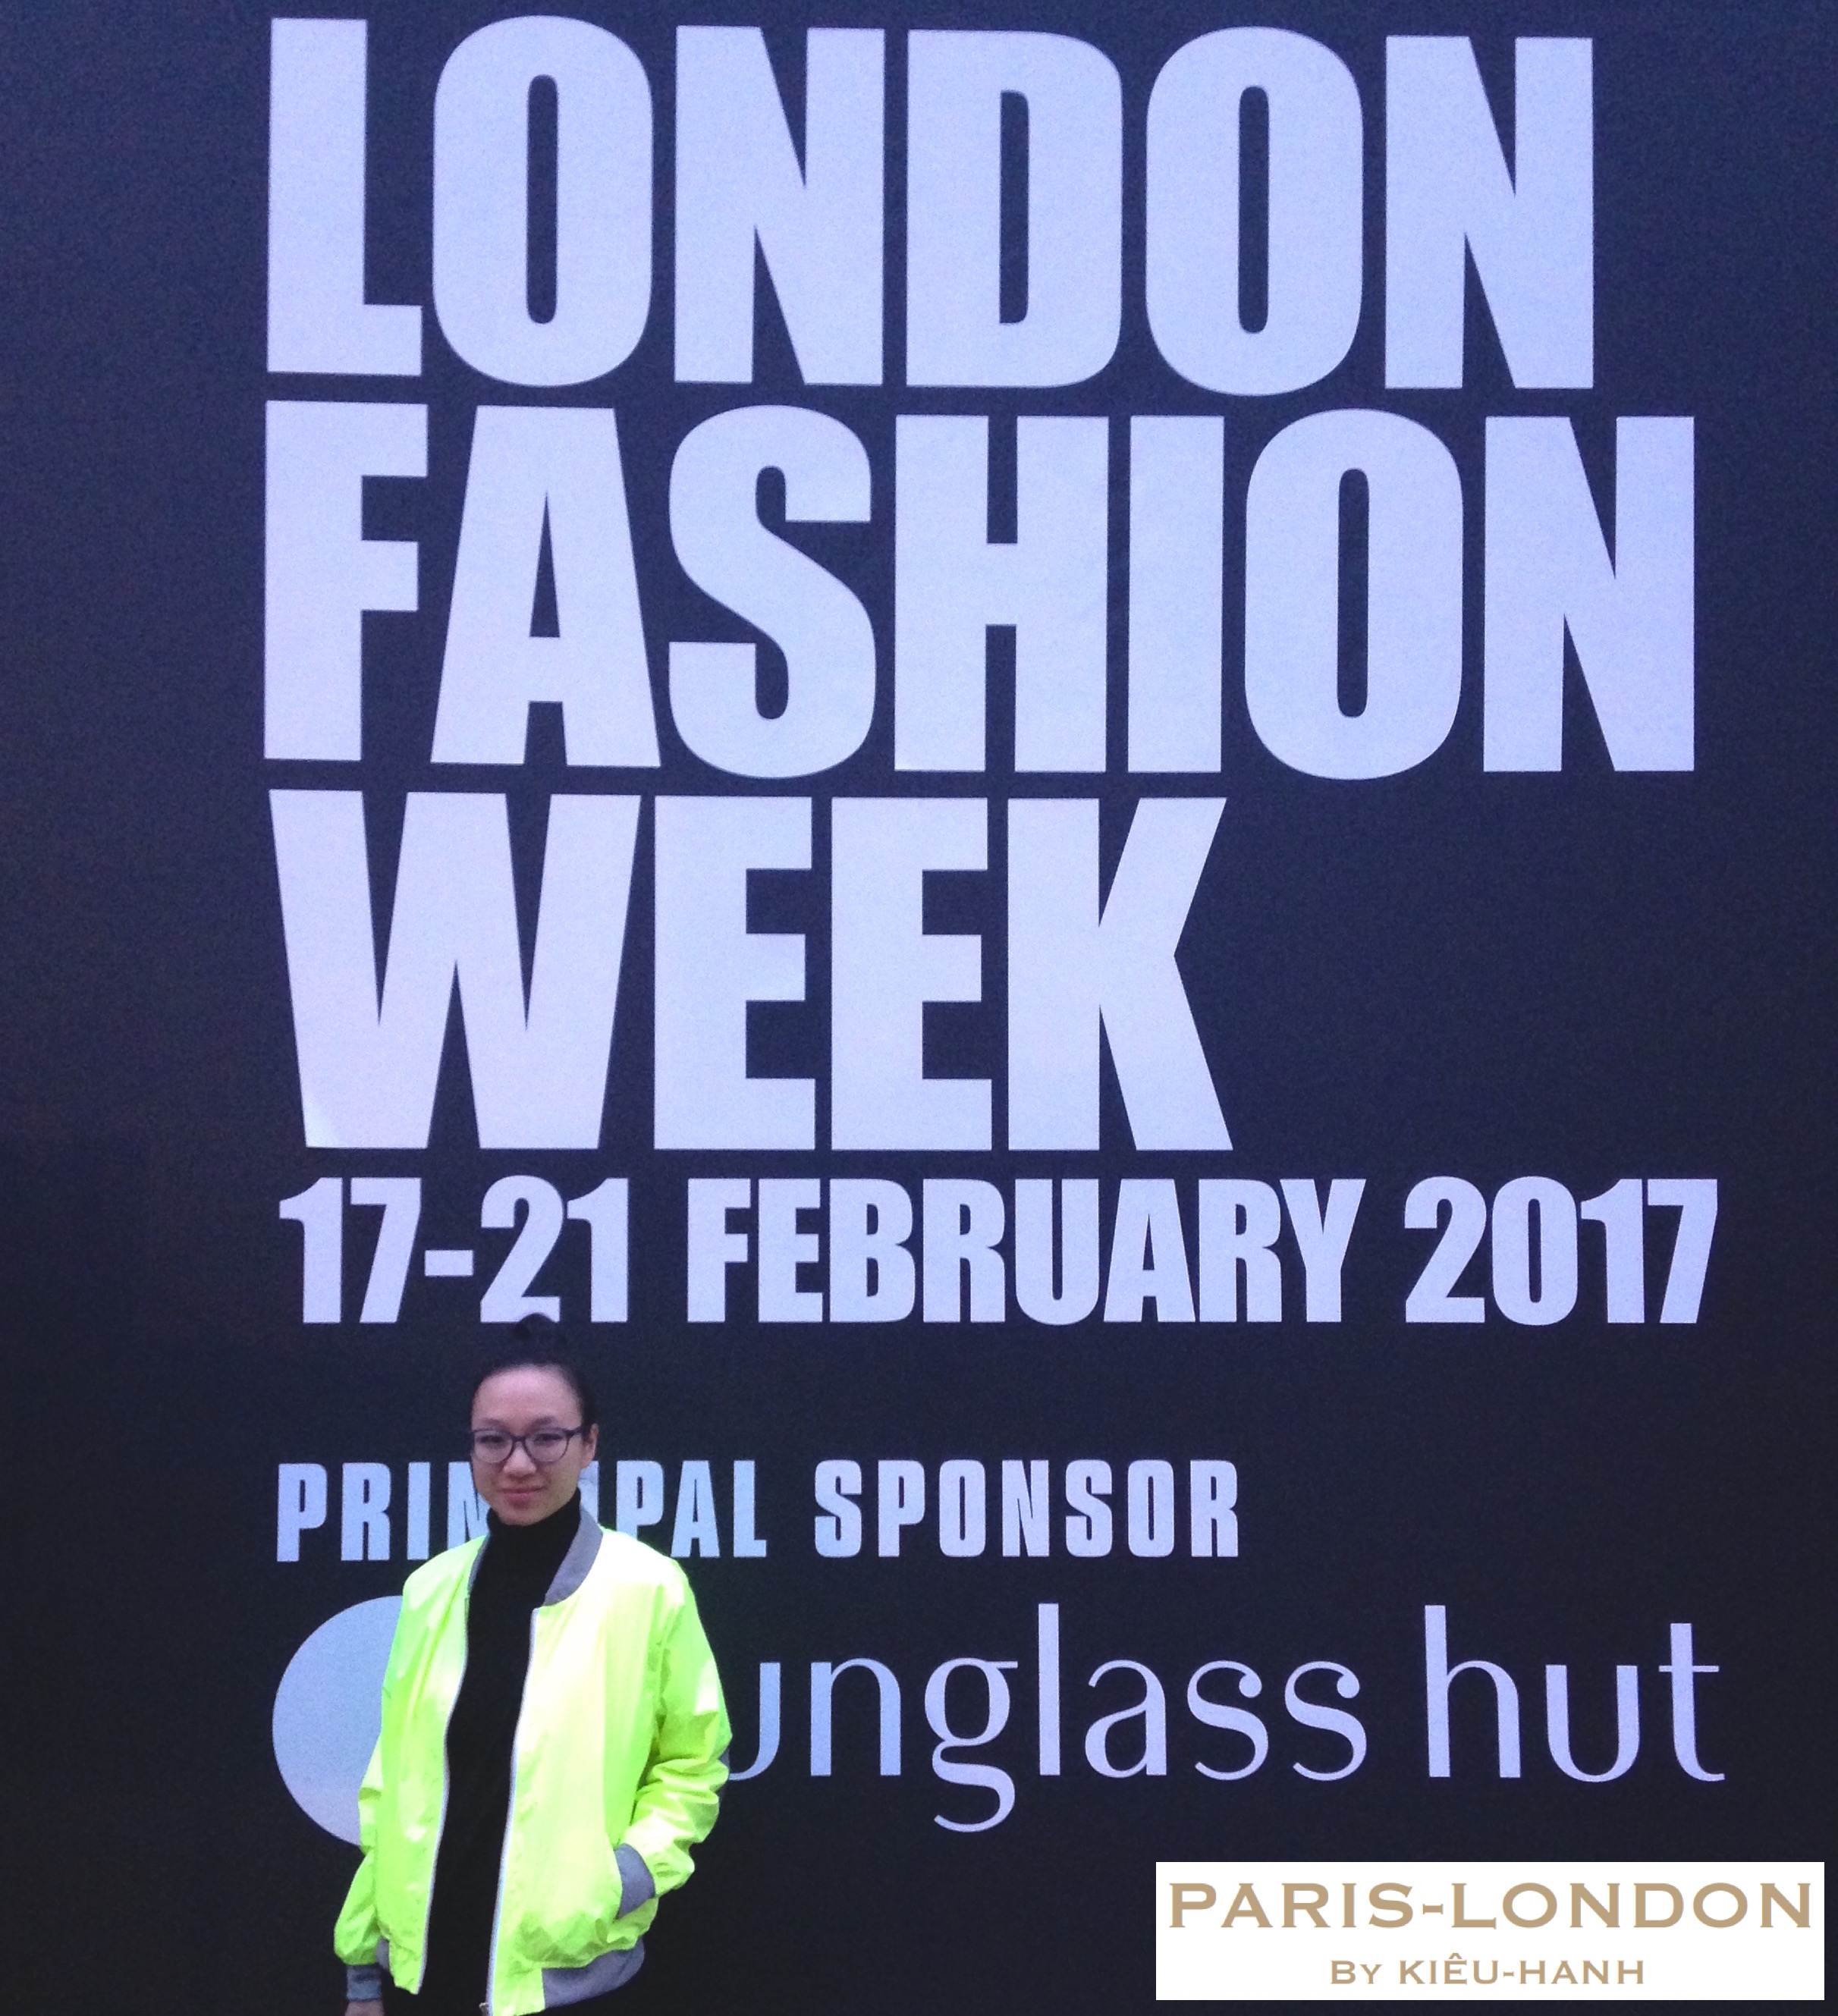 PARIS-LONDON BY KIEU-HANH. LONDON FASHION WEEK.jpg